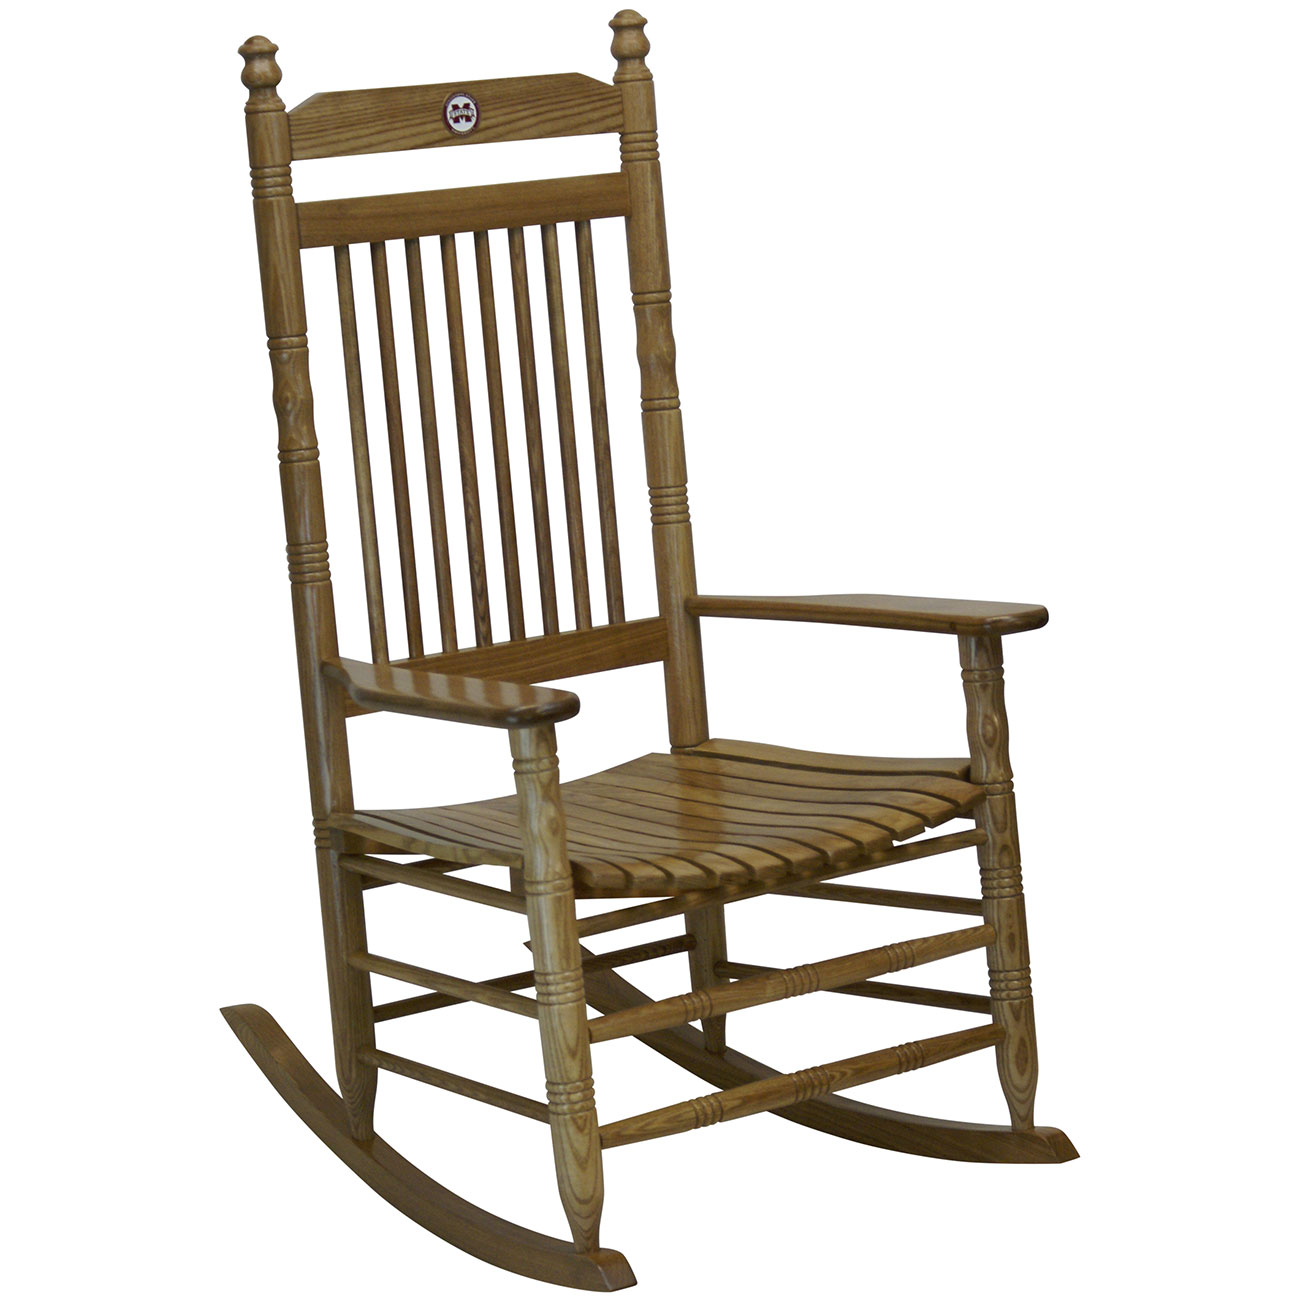 Genial Hardwood Rocking Chair   Mississippi StateHardwood Rocking Chair    Mississippi State ...